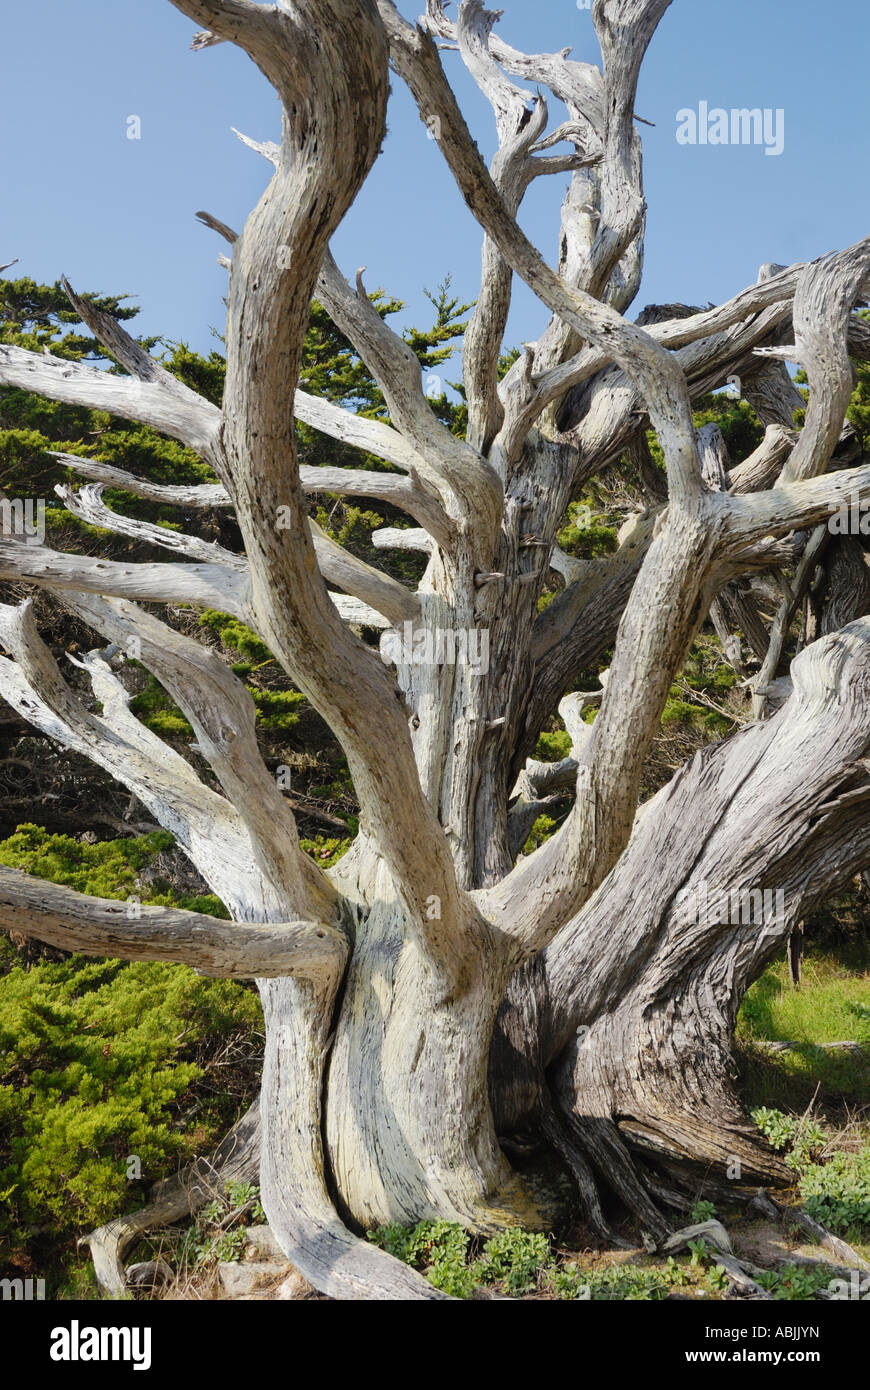 Point Lobos State Reserve Allan Memorial Grove of Monterey Cypress Trees - Stock Image